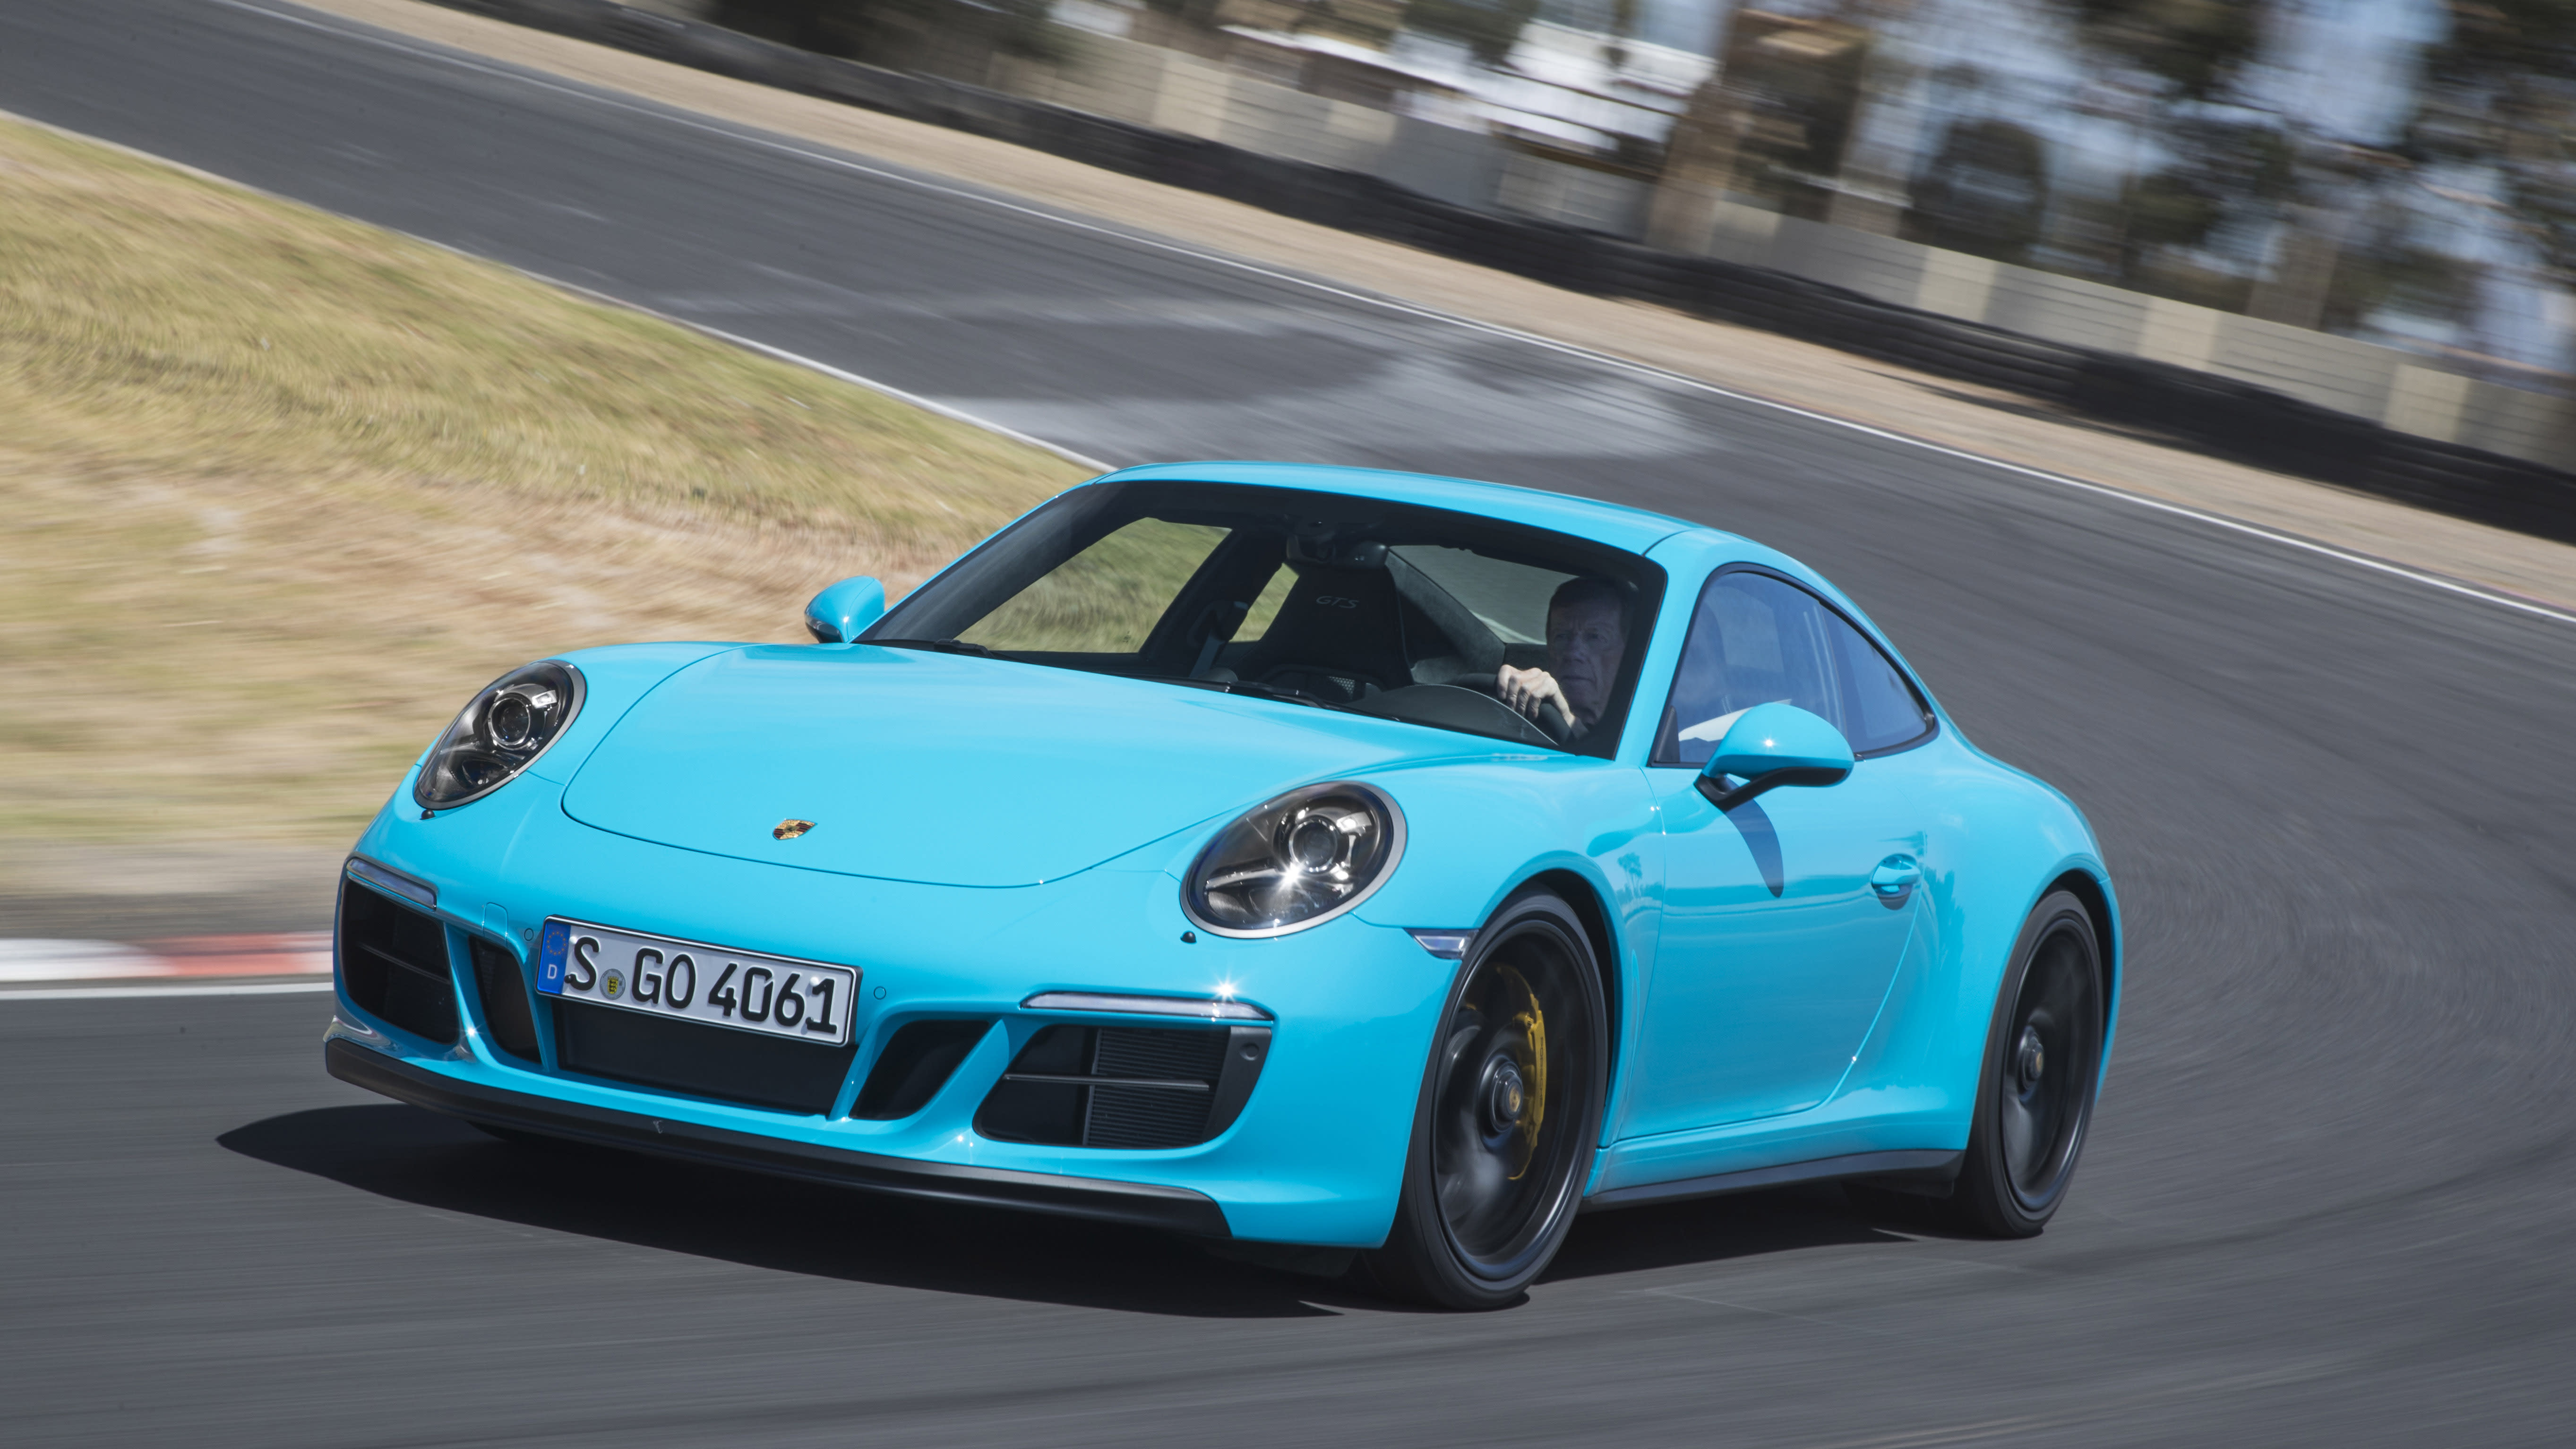 US Porsche Dealers To Get 10% More 911s They Wanted